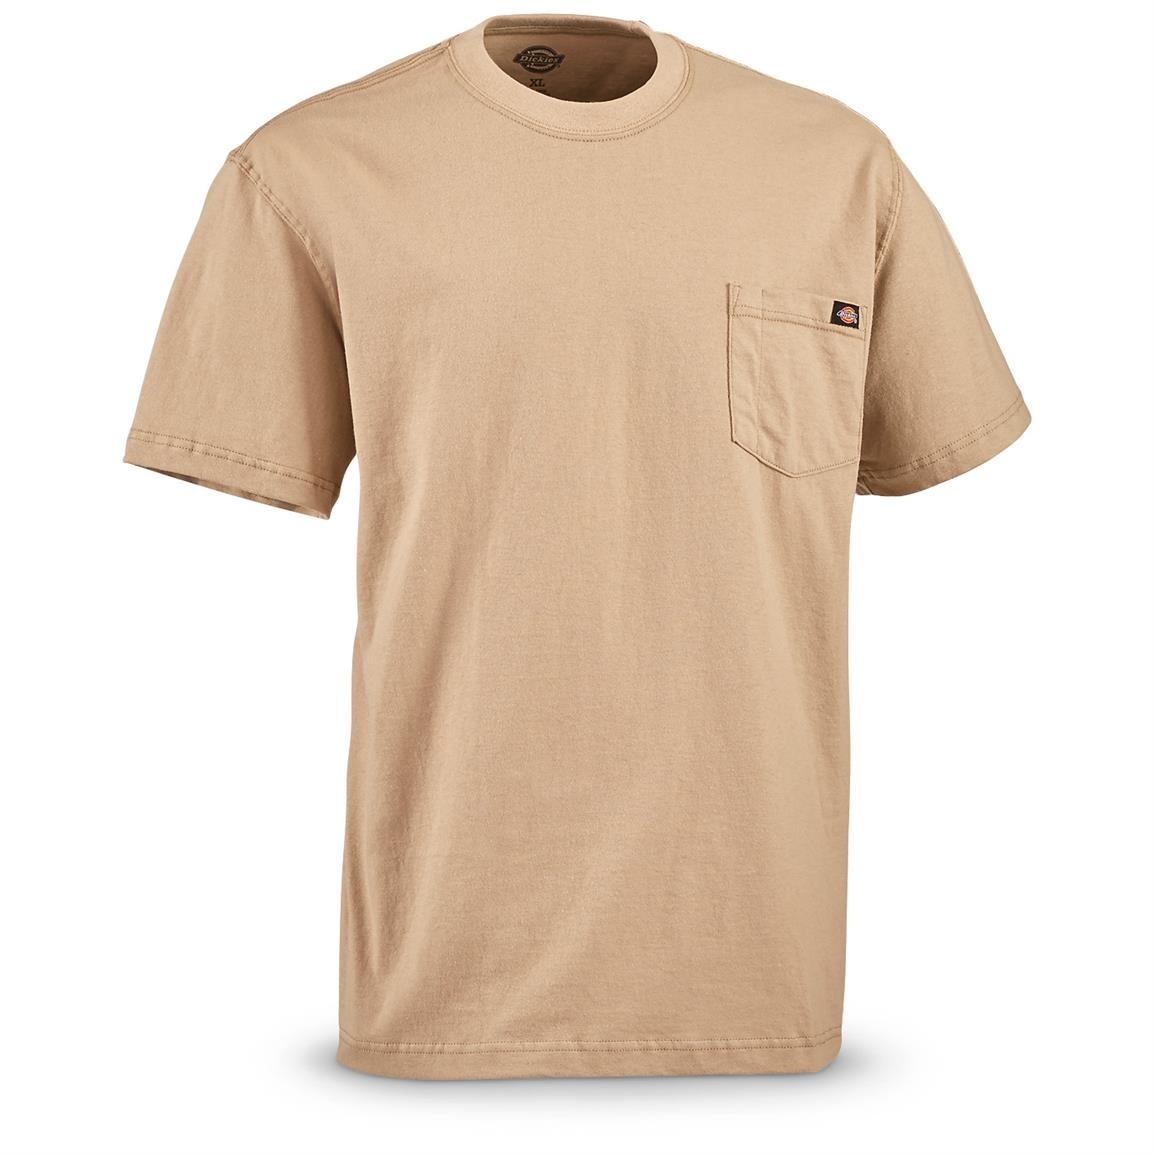 Dickies Men's Short Sleeve Pocket Shirt, 2 Pack, Sand